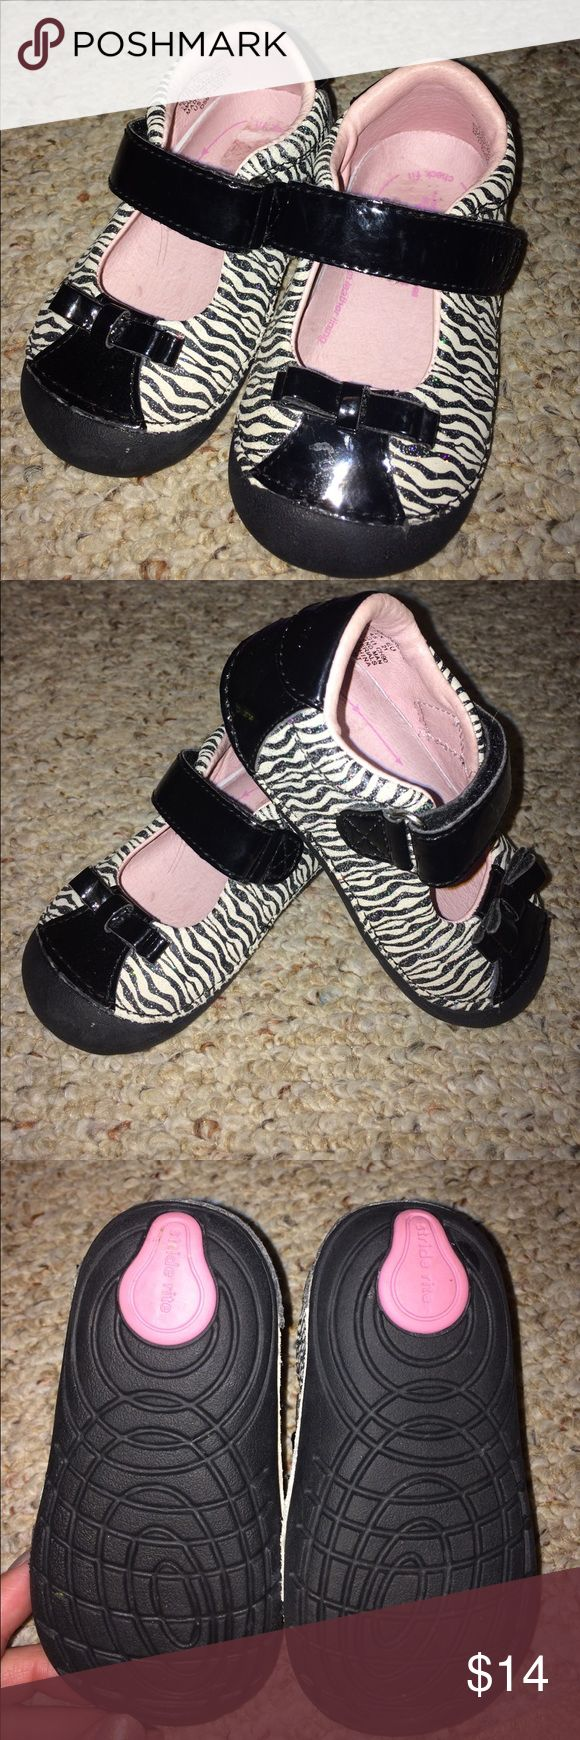 Stride Rite Black and White zebra toddler shoe; 5 Oh so adorable! These Zebra shoes in black and white, sparkle with glitter! Velcro closure across the top. Leather upper.  Bought from another posher but too small for my little girl's feet 😖 A great walking shoe with support and skid free soles! So sad to part with them. Stride Rite Shoes Baby & Walker